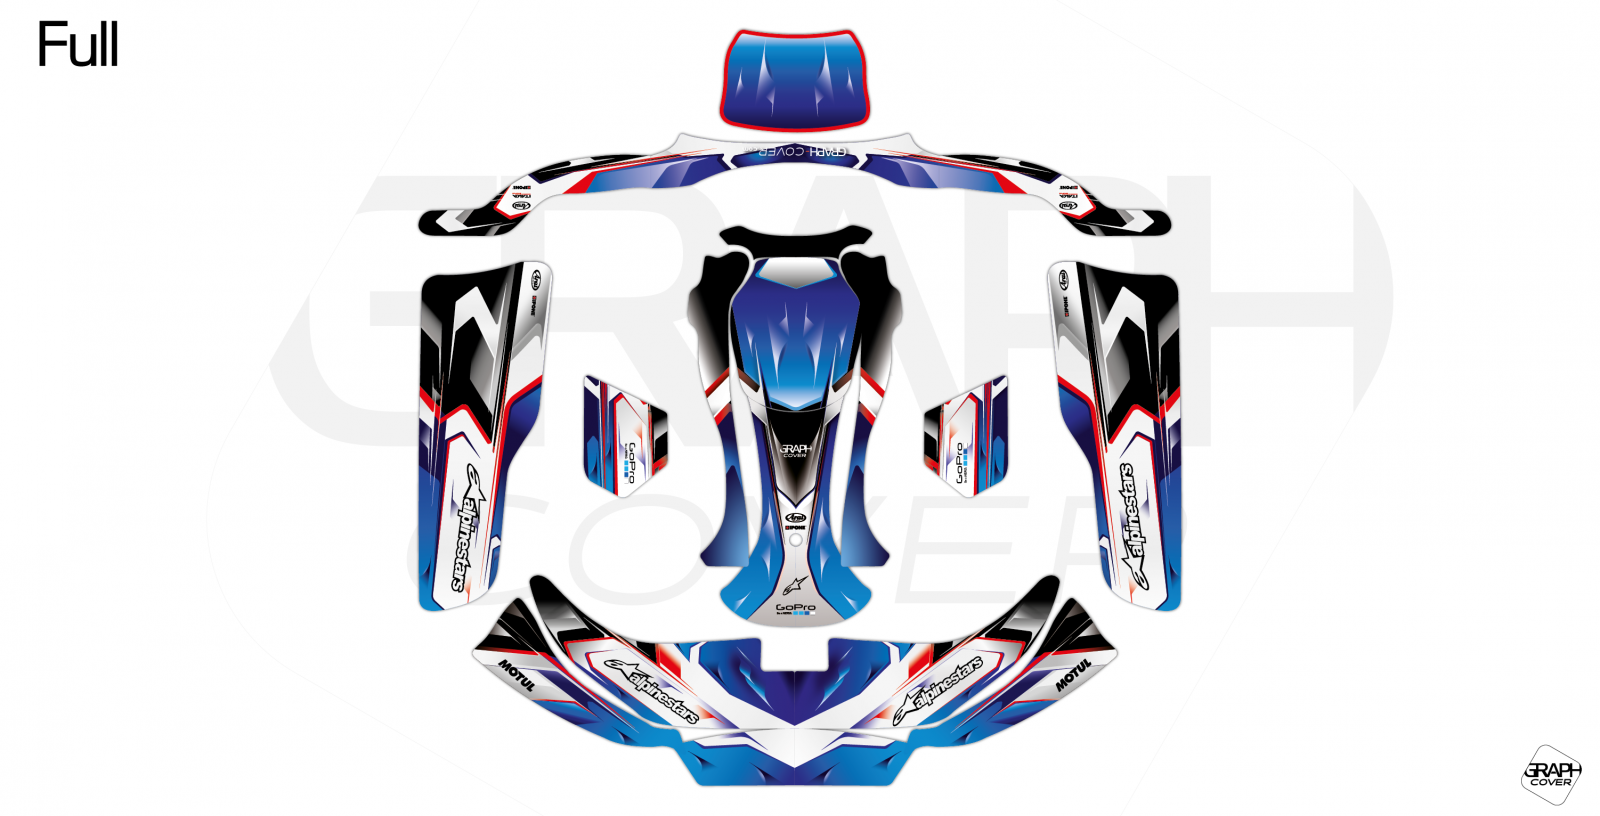 GRAPHIC KIT KARTING CRG NEW AGE 3 NURBURGRING BLUE full